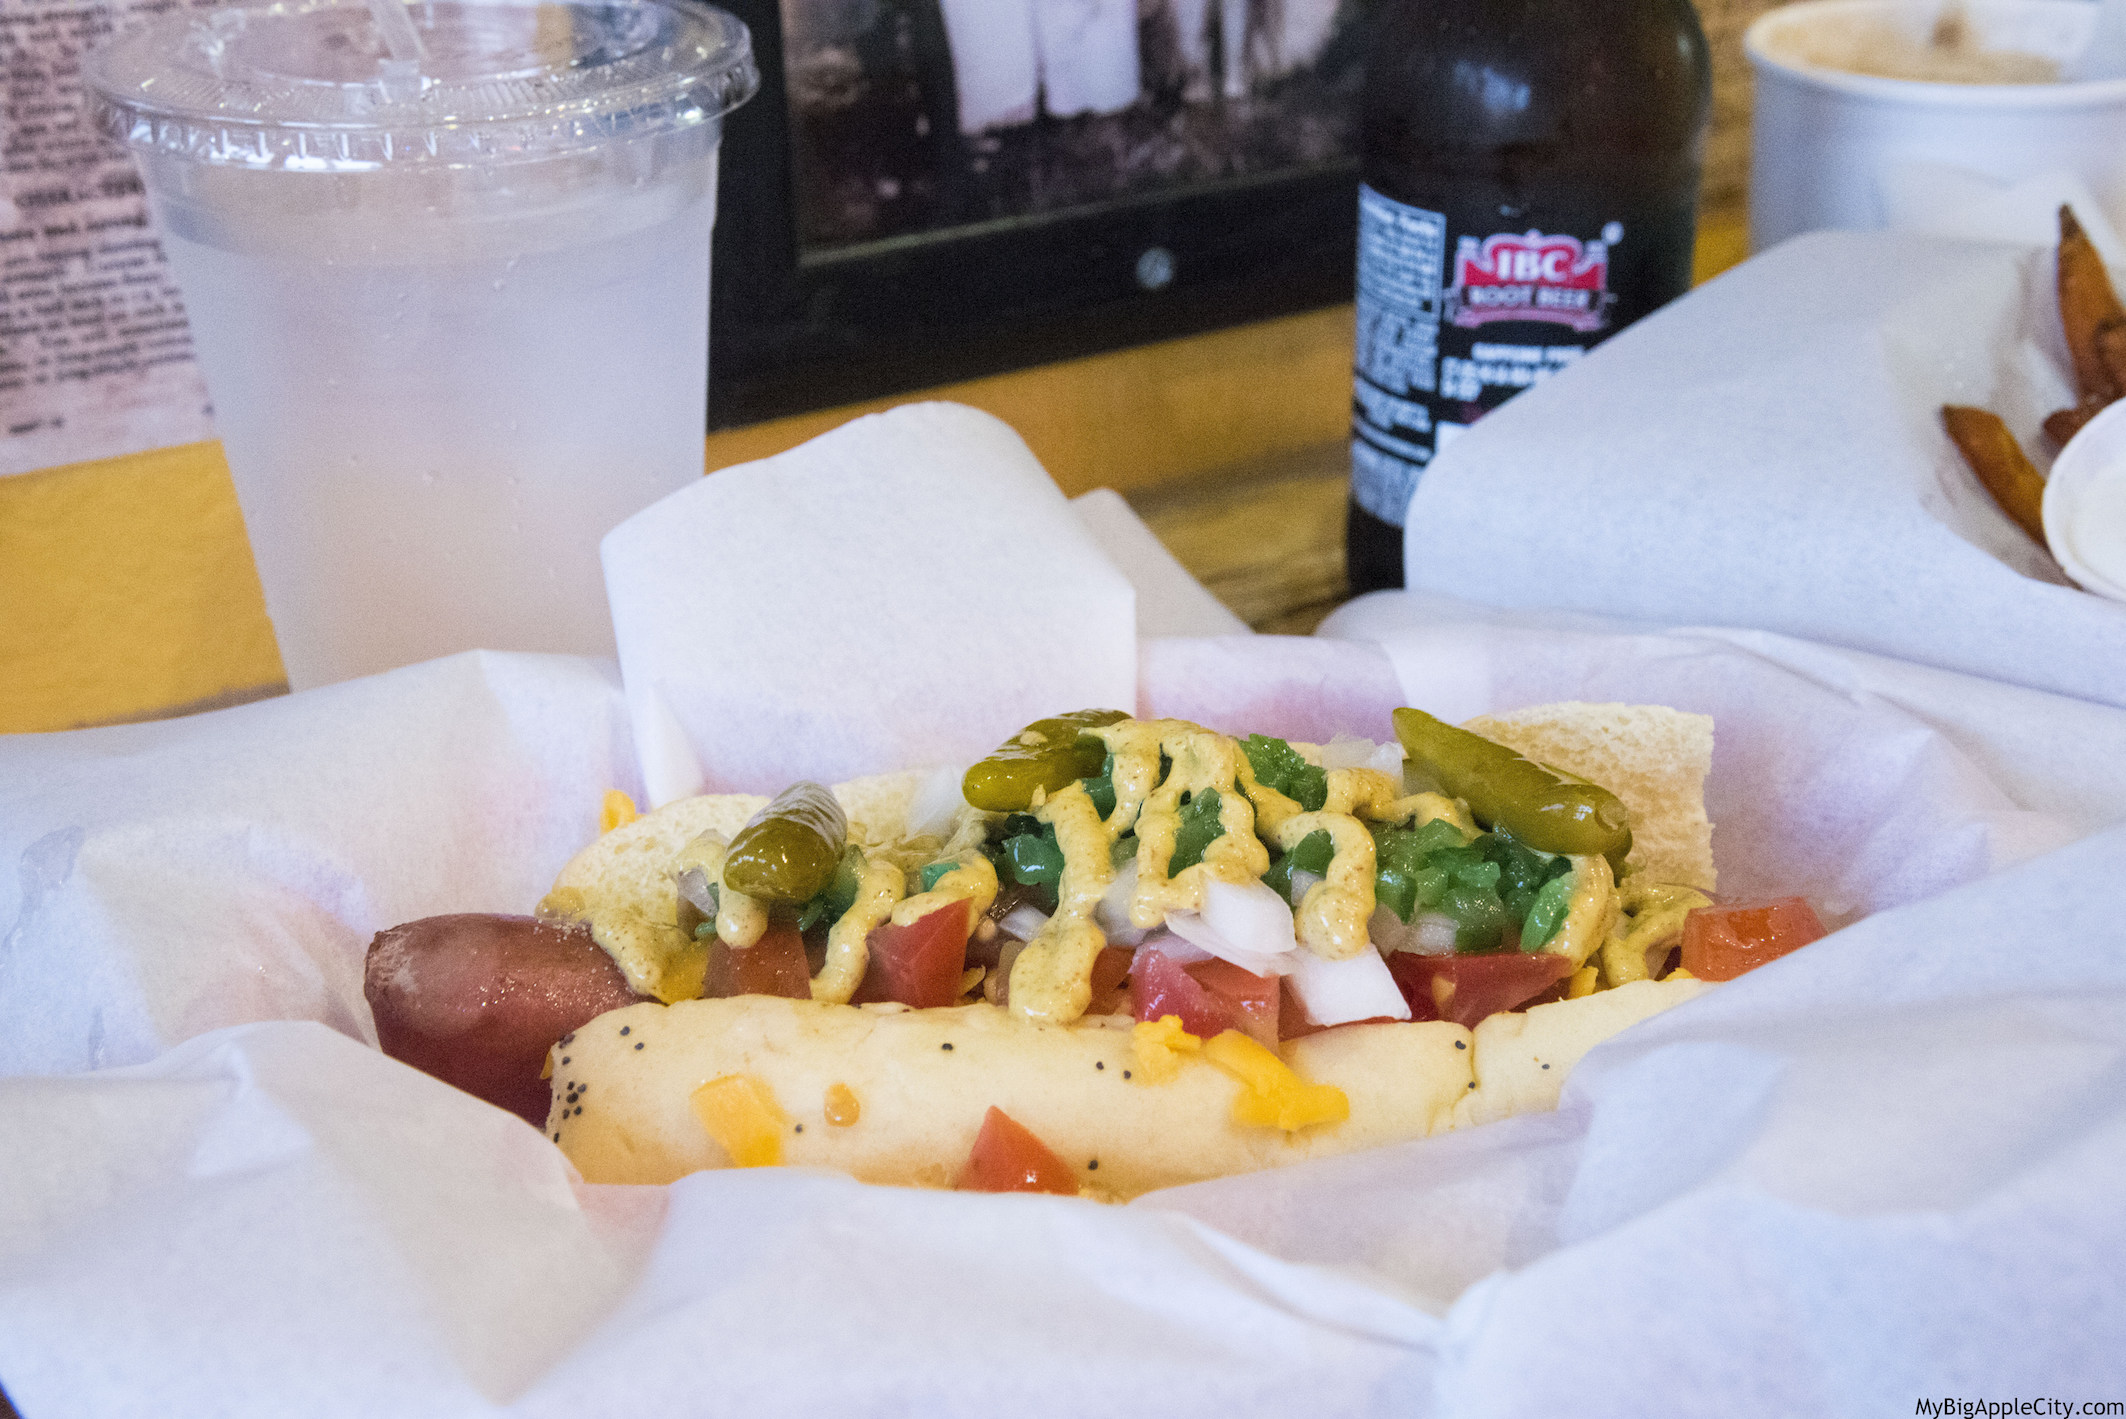 Crockers-best-hot-dog-newport-beach-mybigapplecity